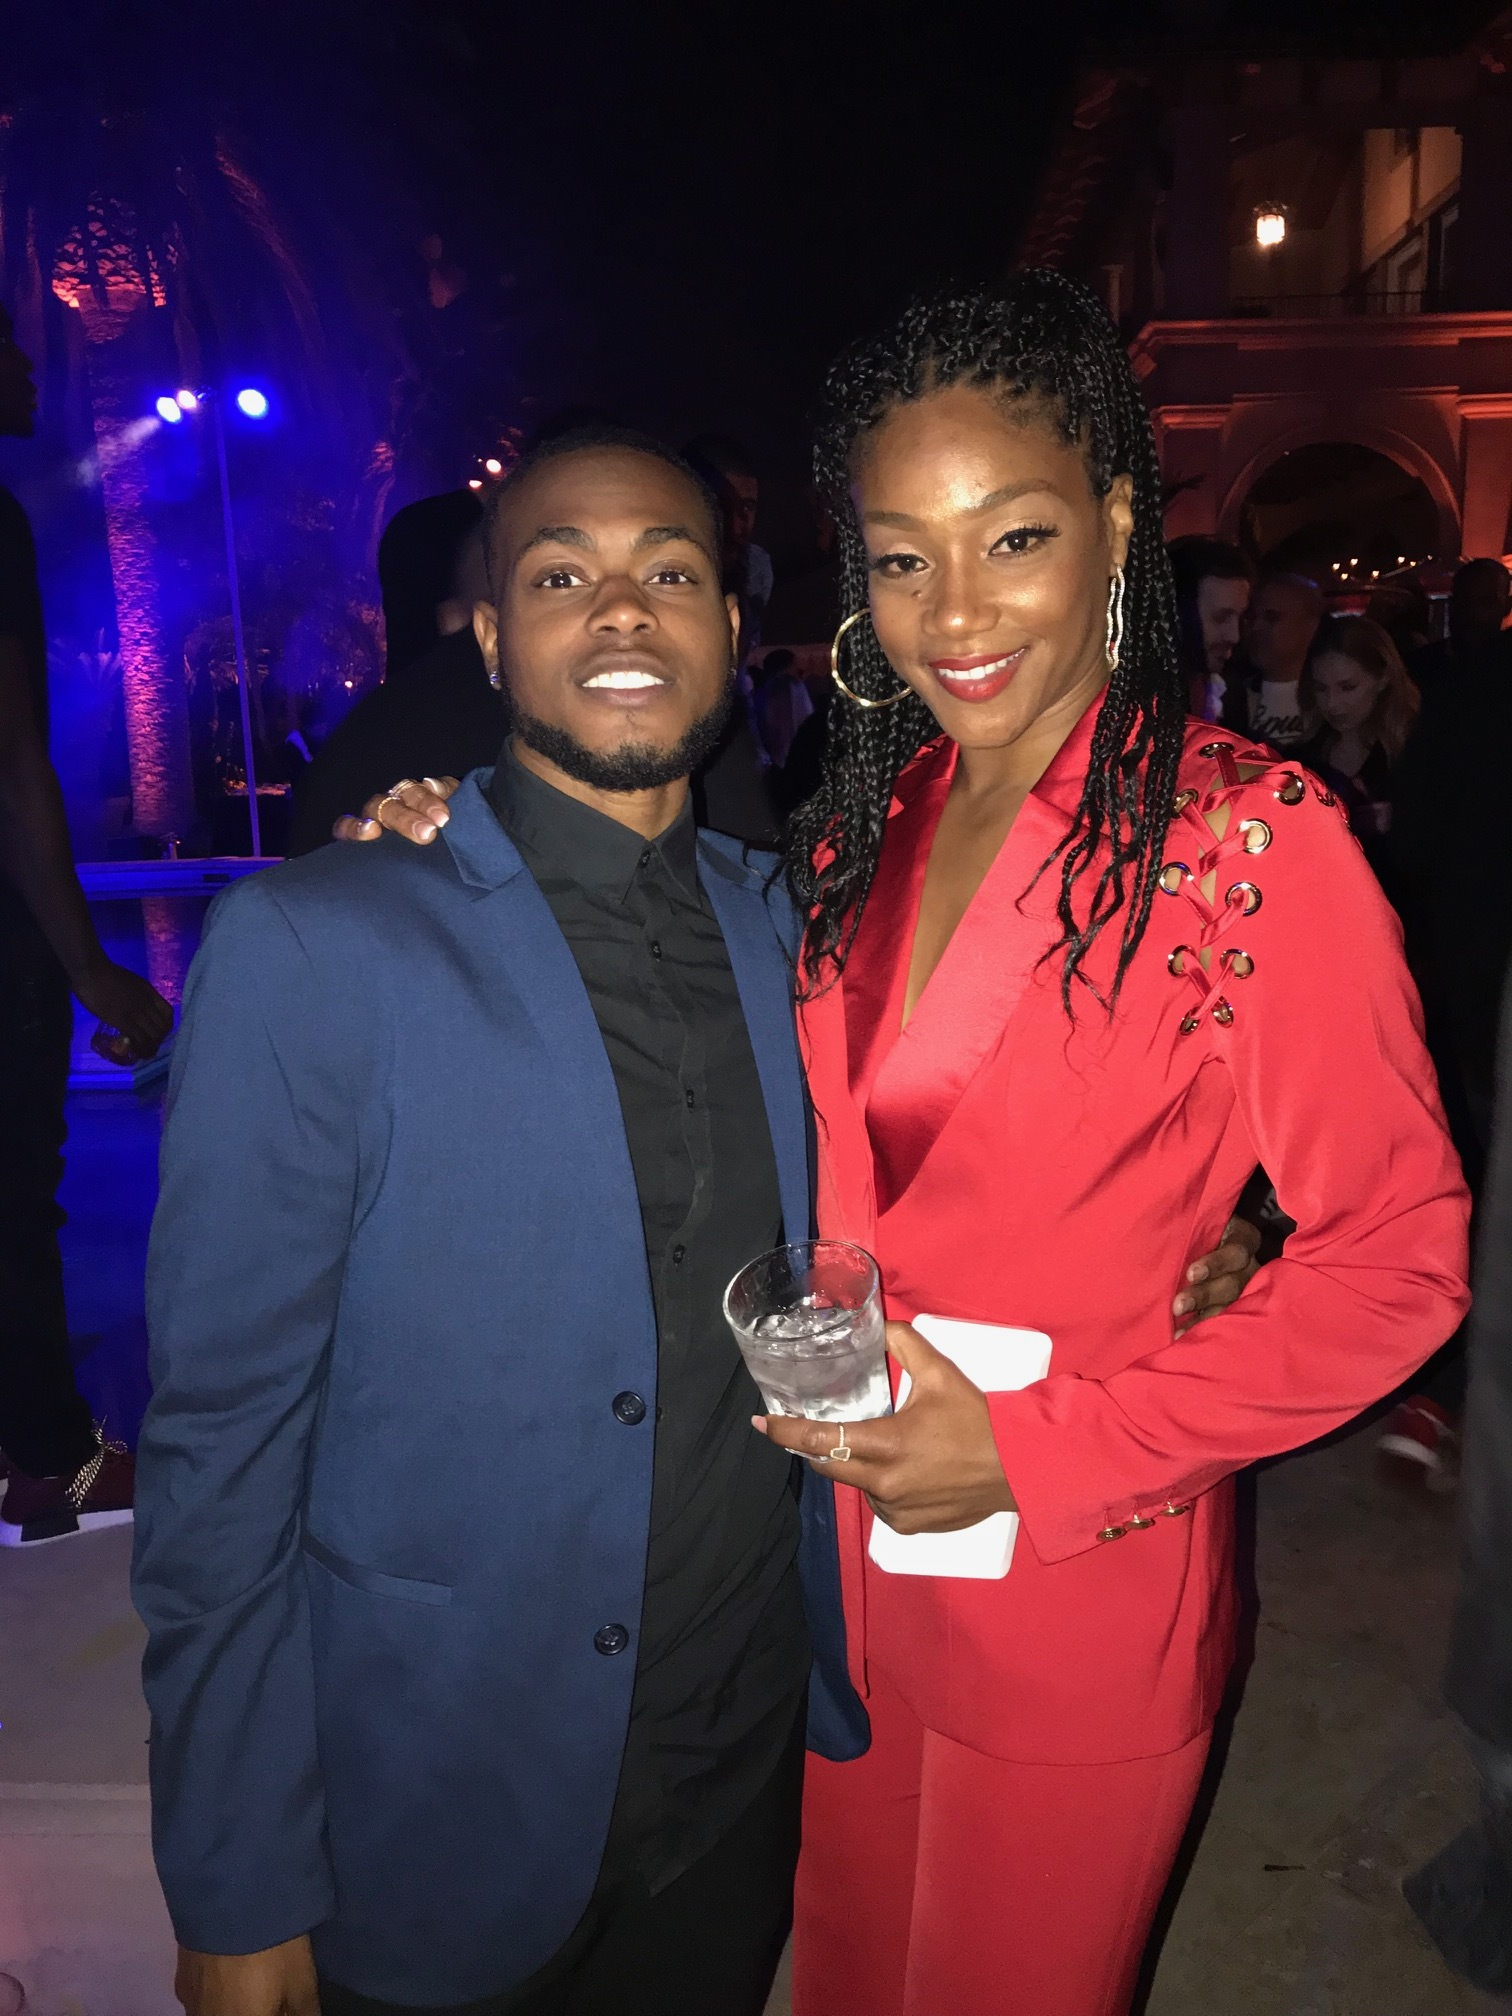 Ammon and Tiffany Haddish. (Picture provided by Ammon Lyle)